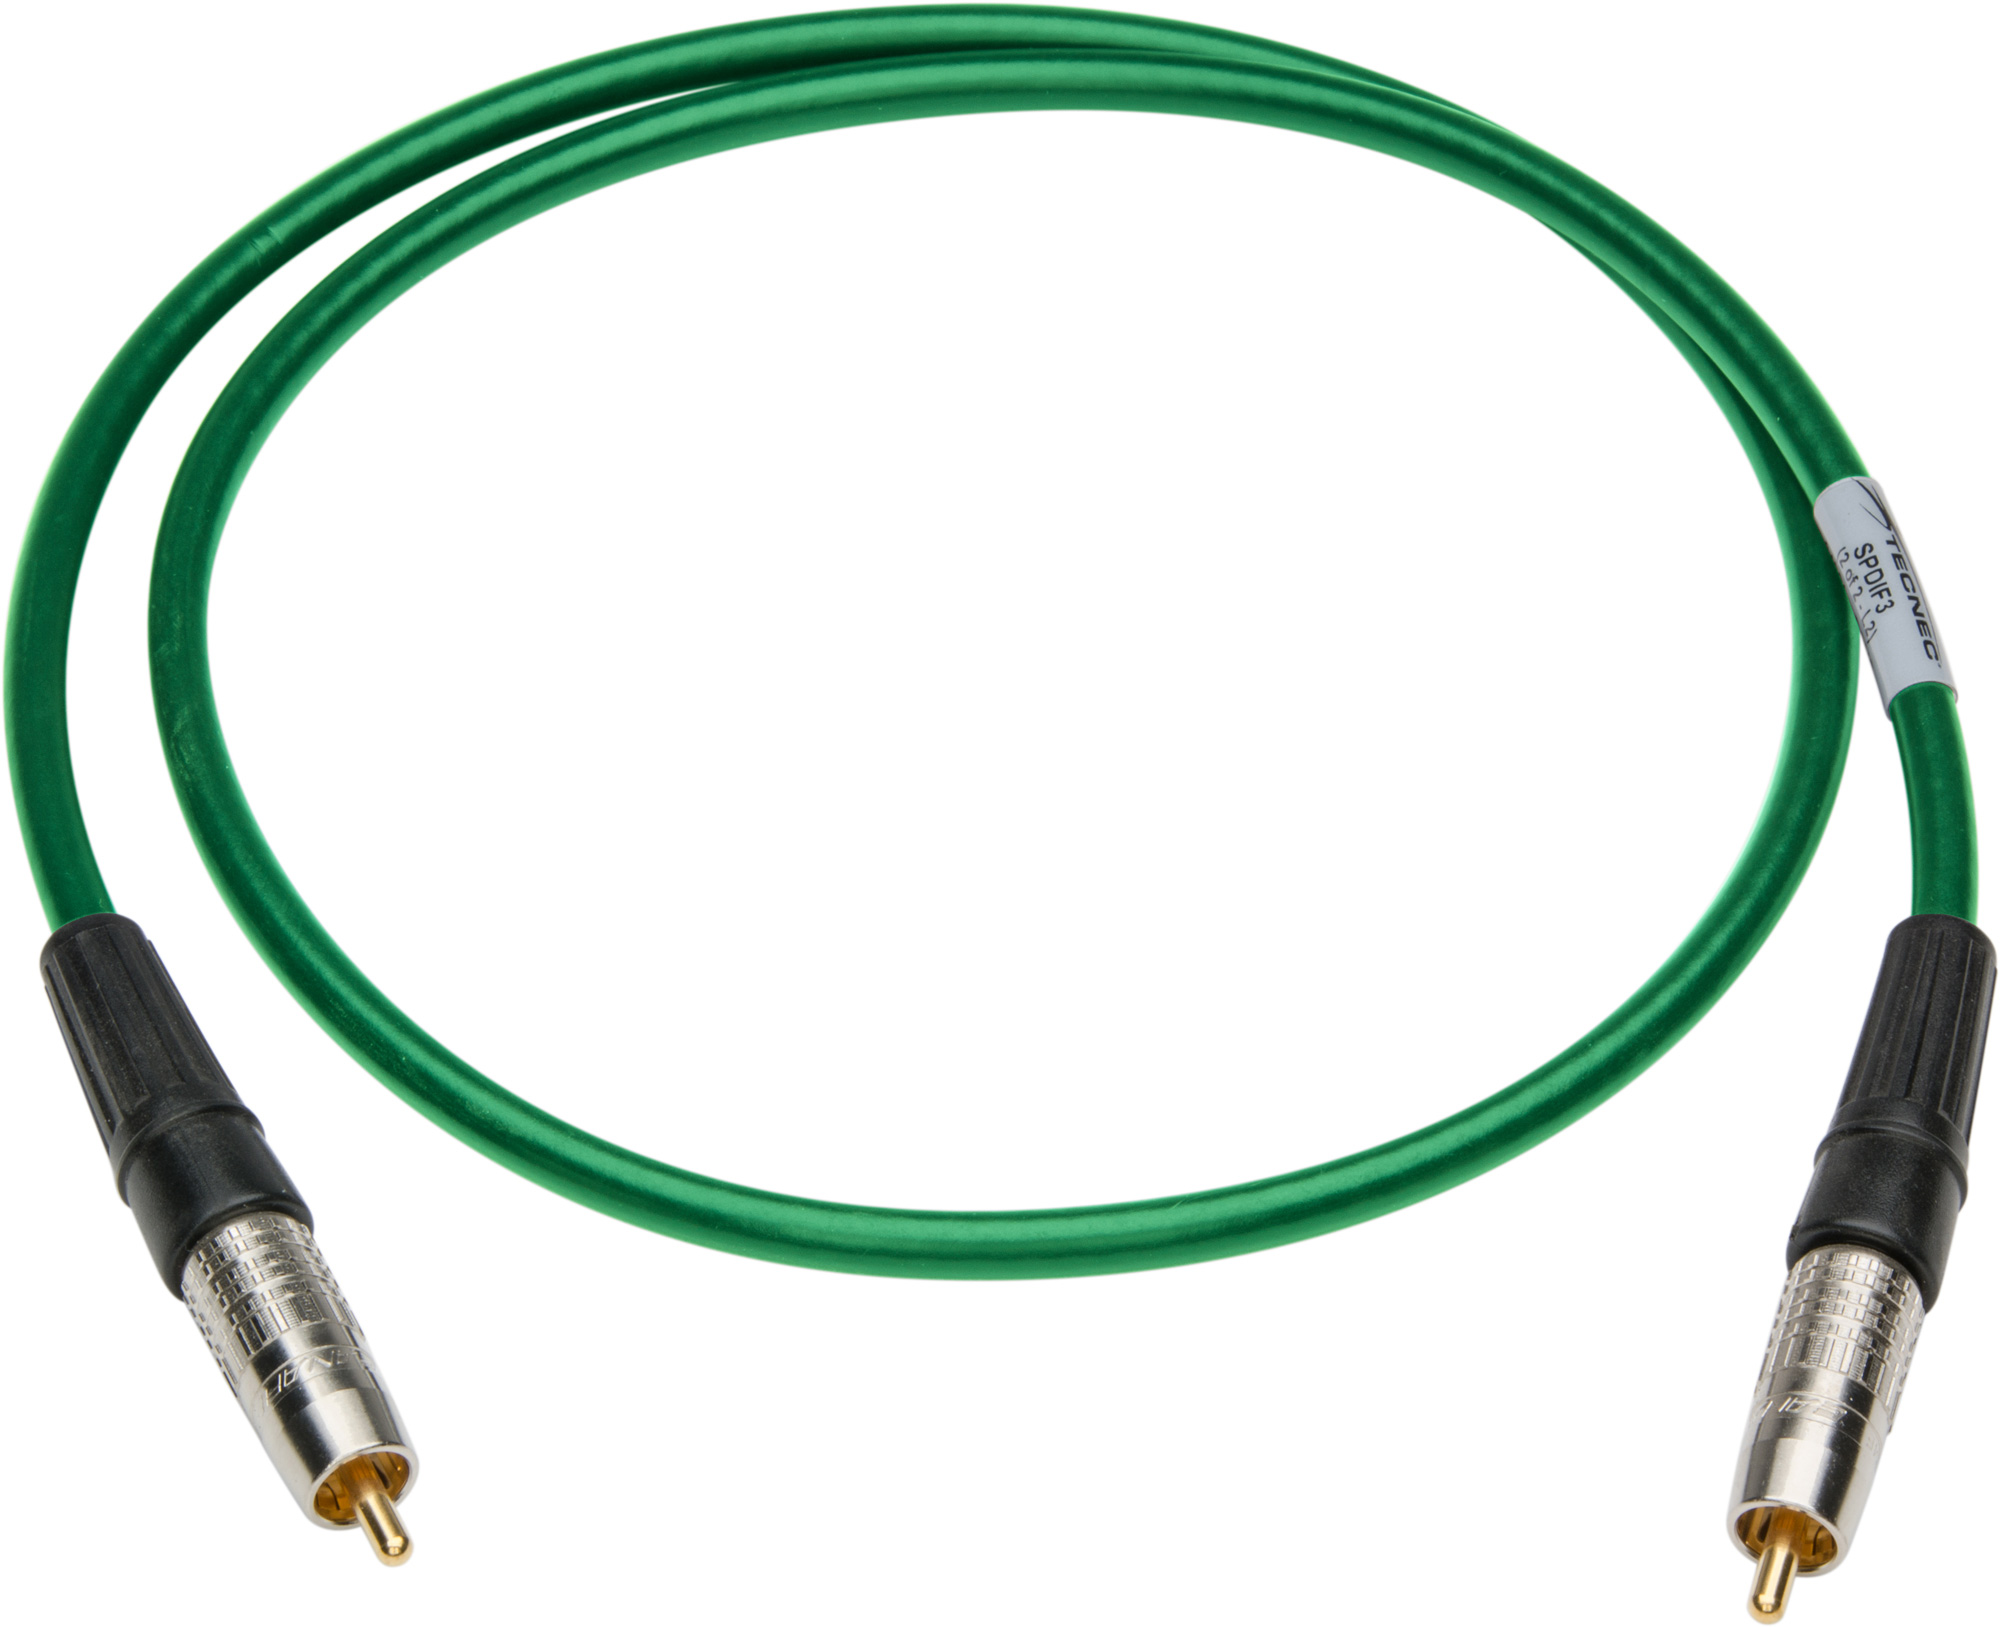 40 Foot SPDIF RCA Male to Male Digital Audio Cable - GREEN SPDIF40GN